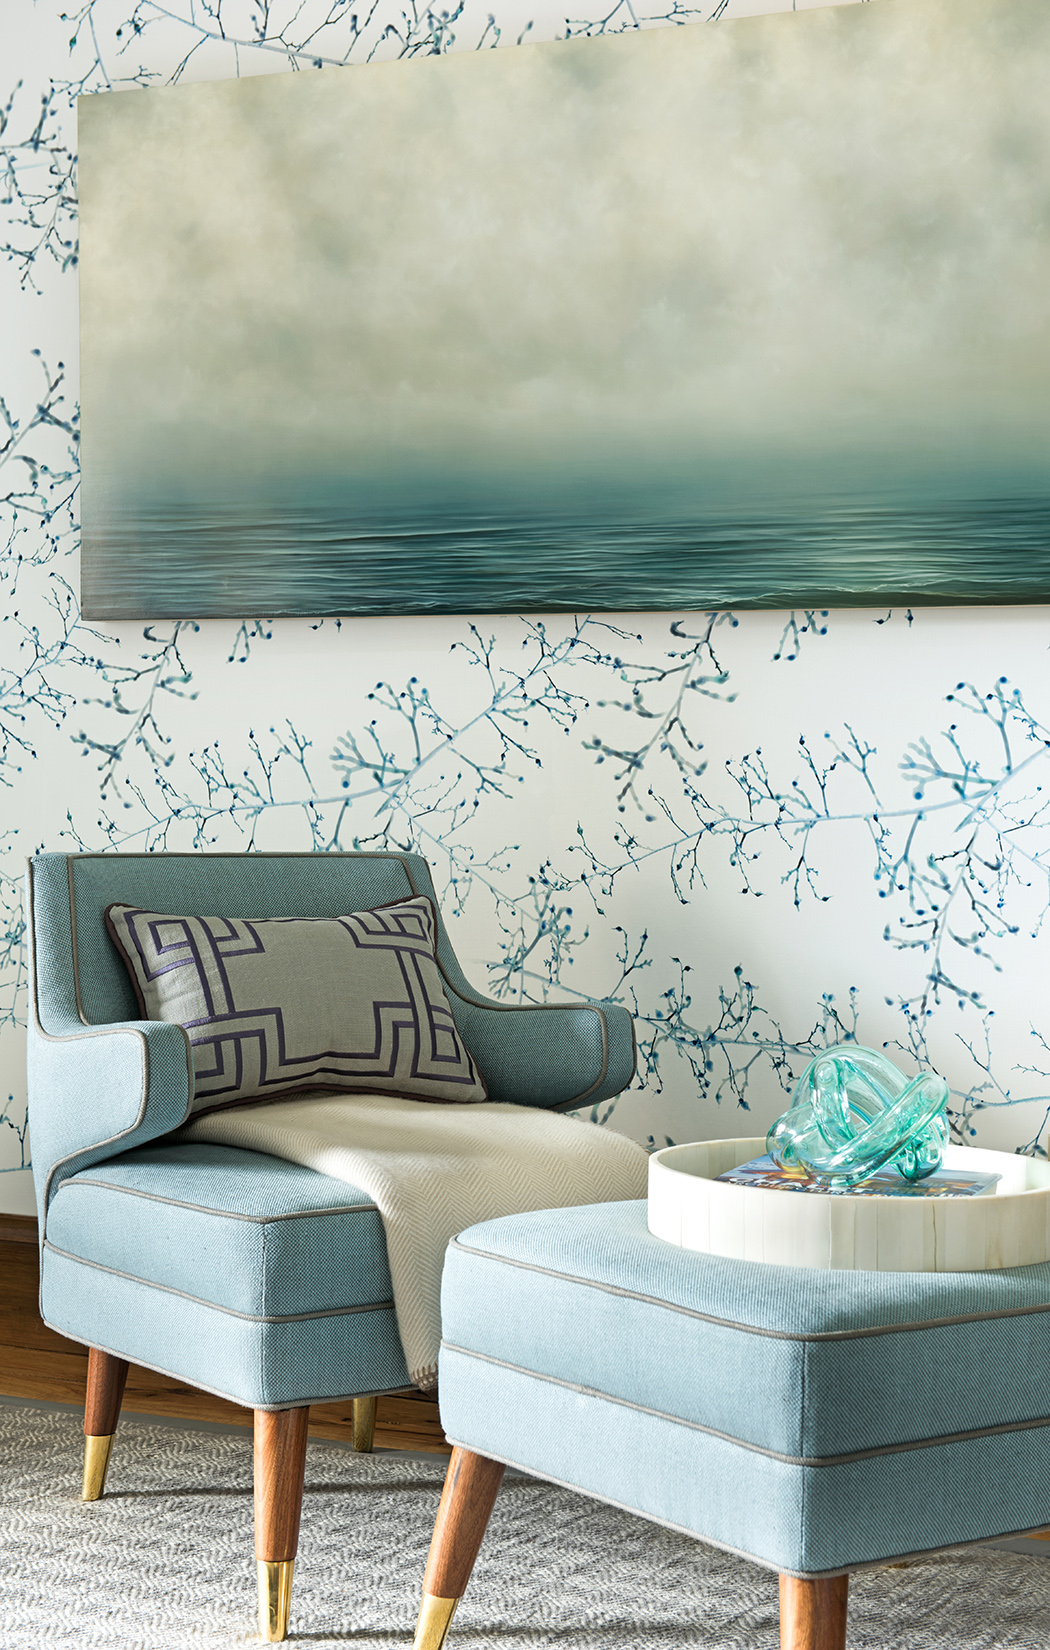 I love the color and the calmness of this space. I just feel like it is the perfect place to relax and reflect. Love it!! Interior Design -  Kelly Hohla Interiors